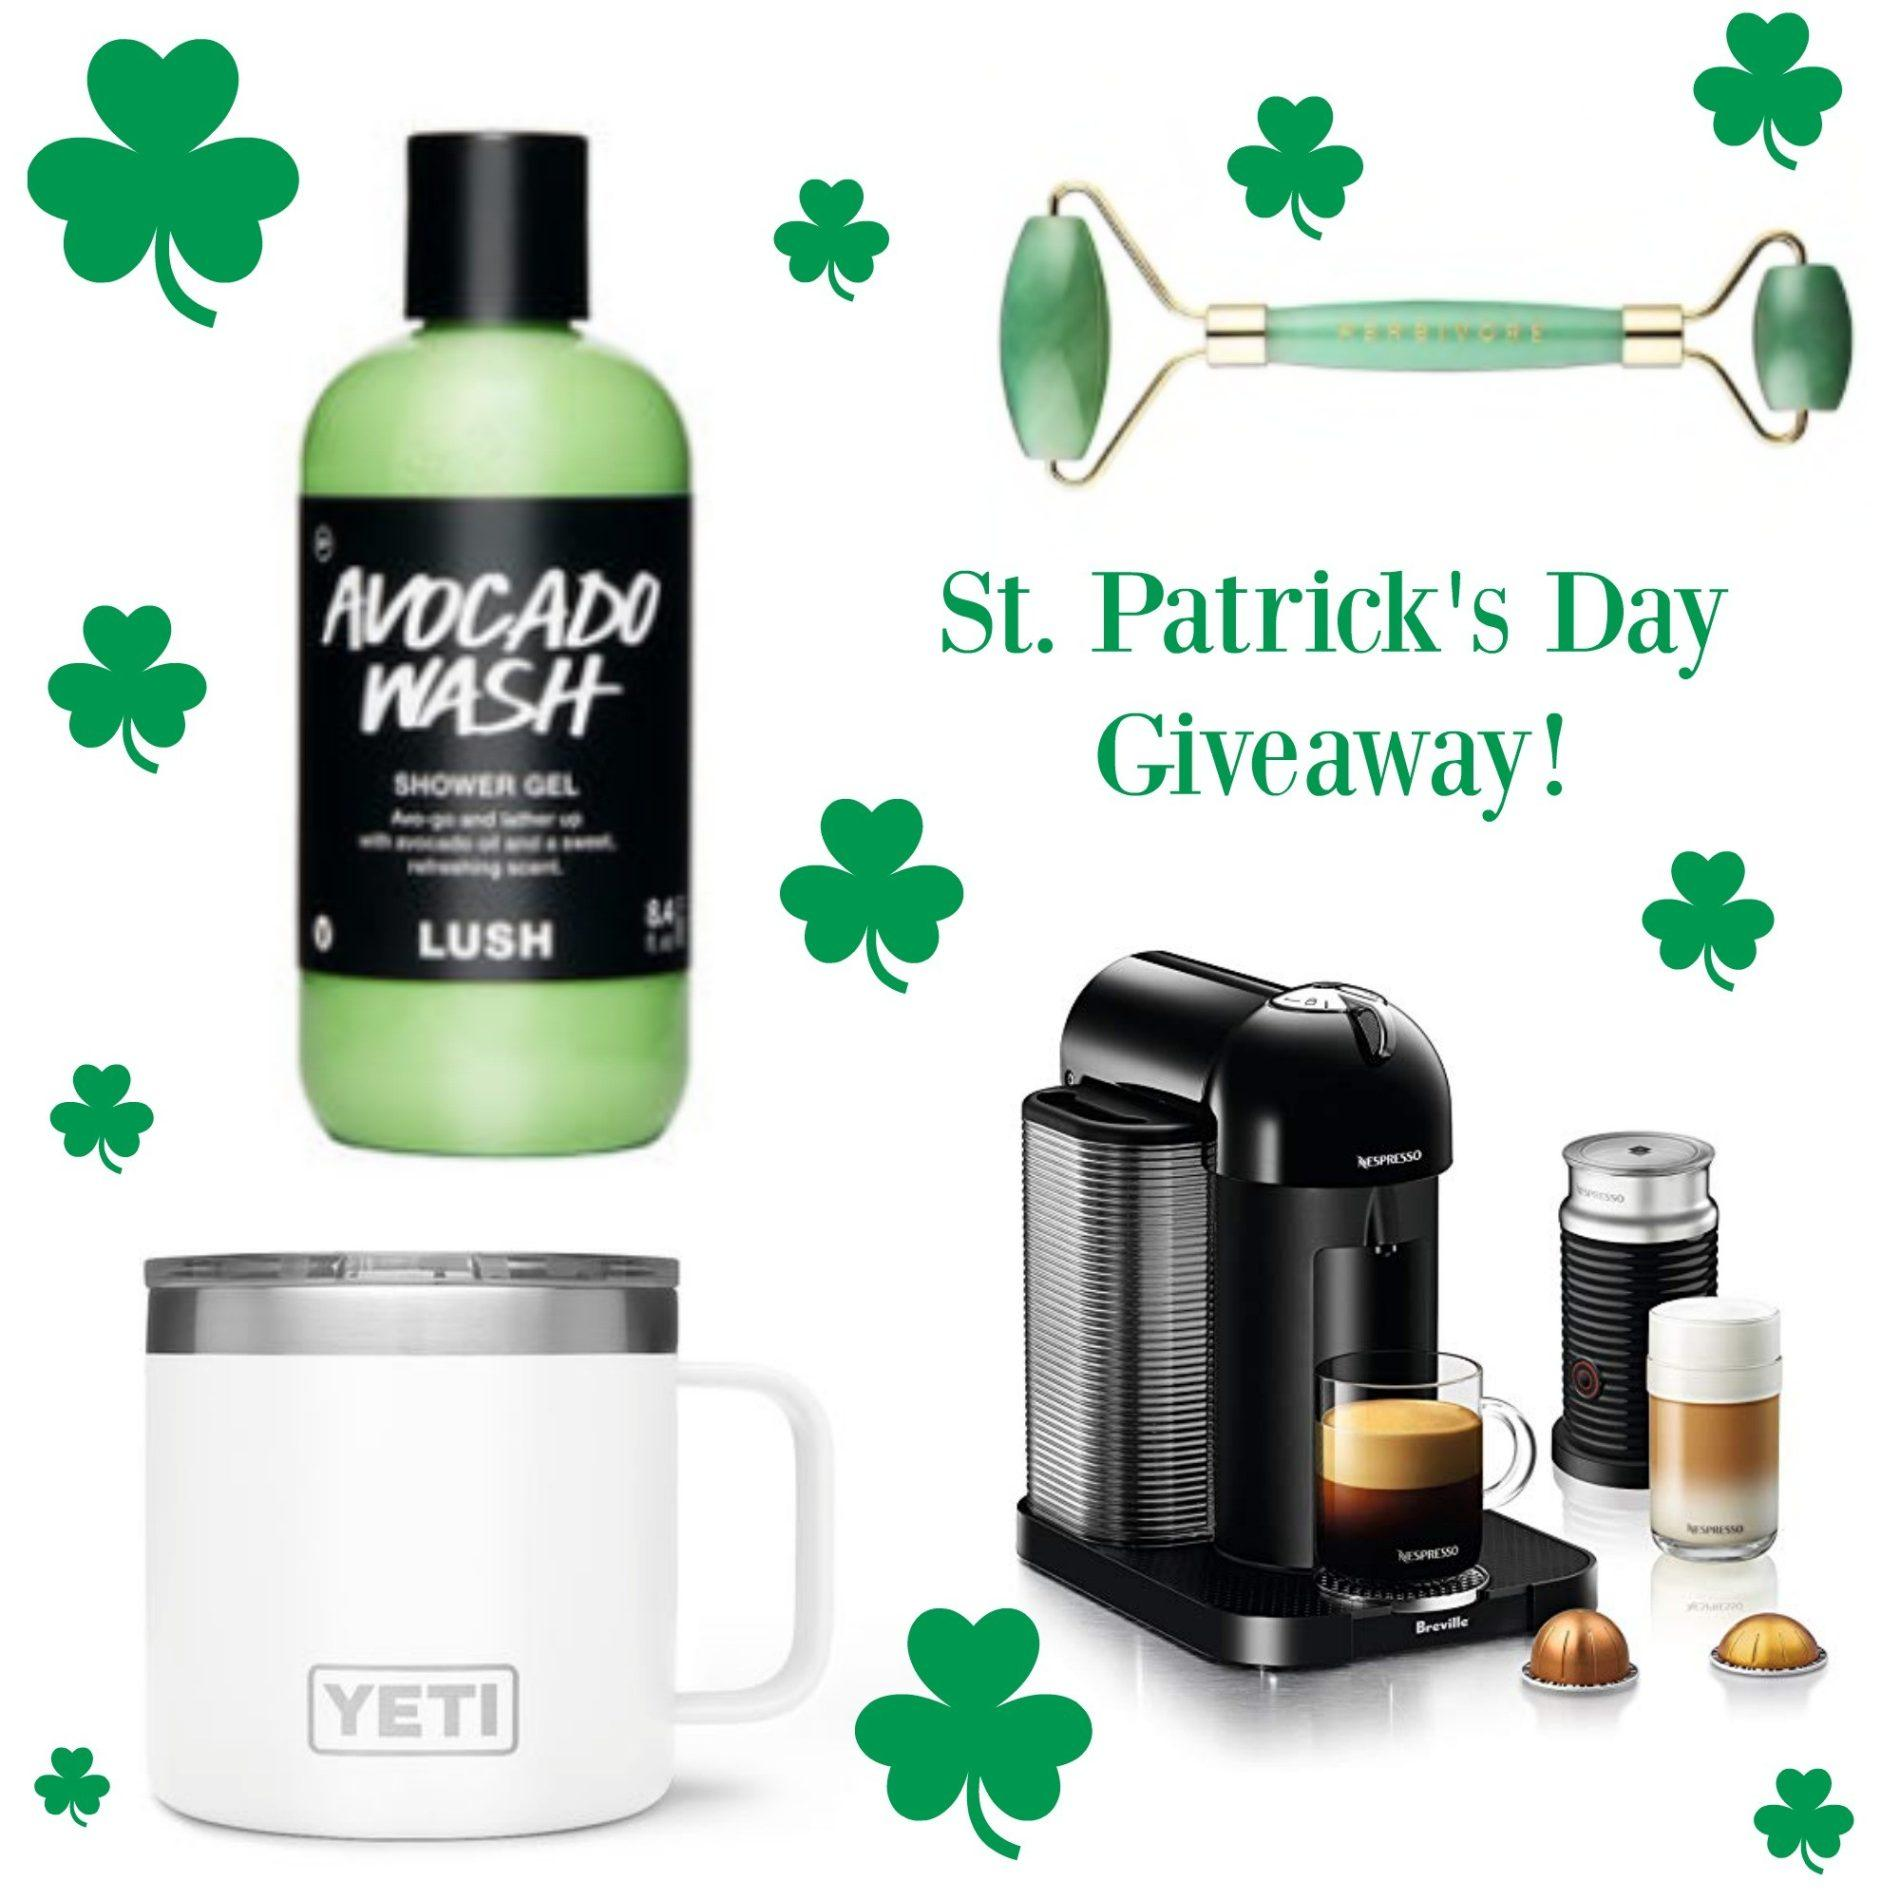 Subscription Box Ramblings St. Patrick's Day Giveaway!